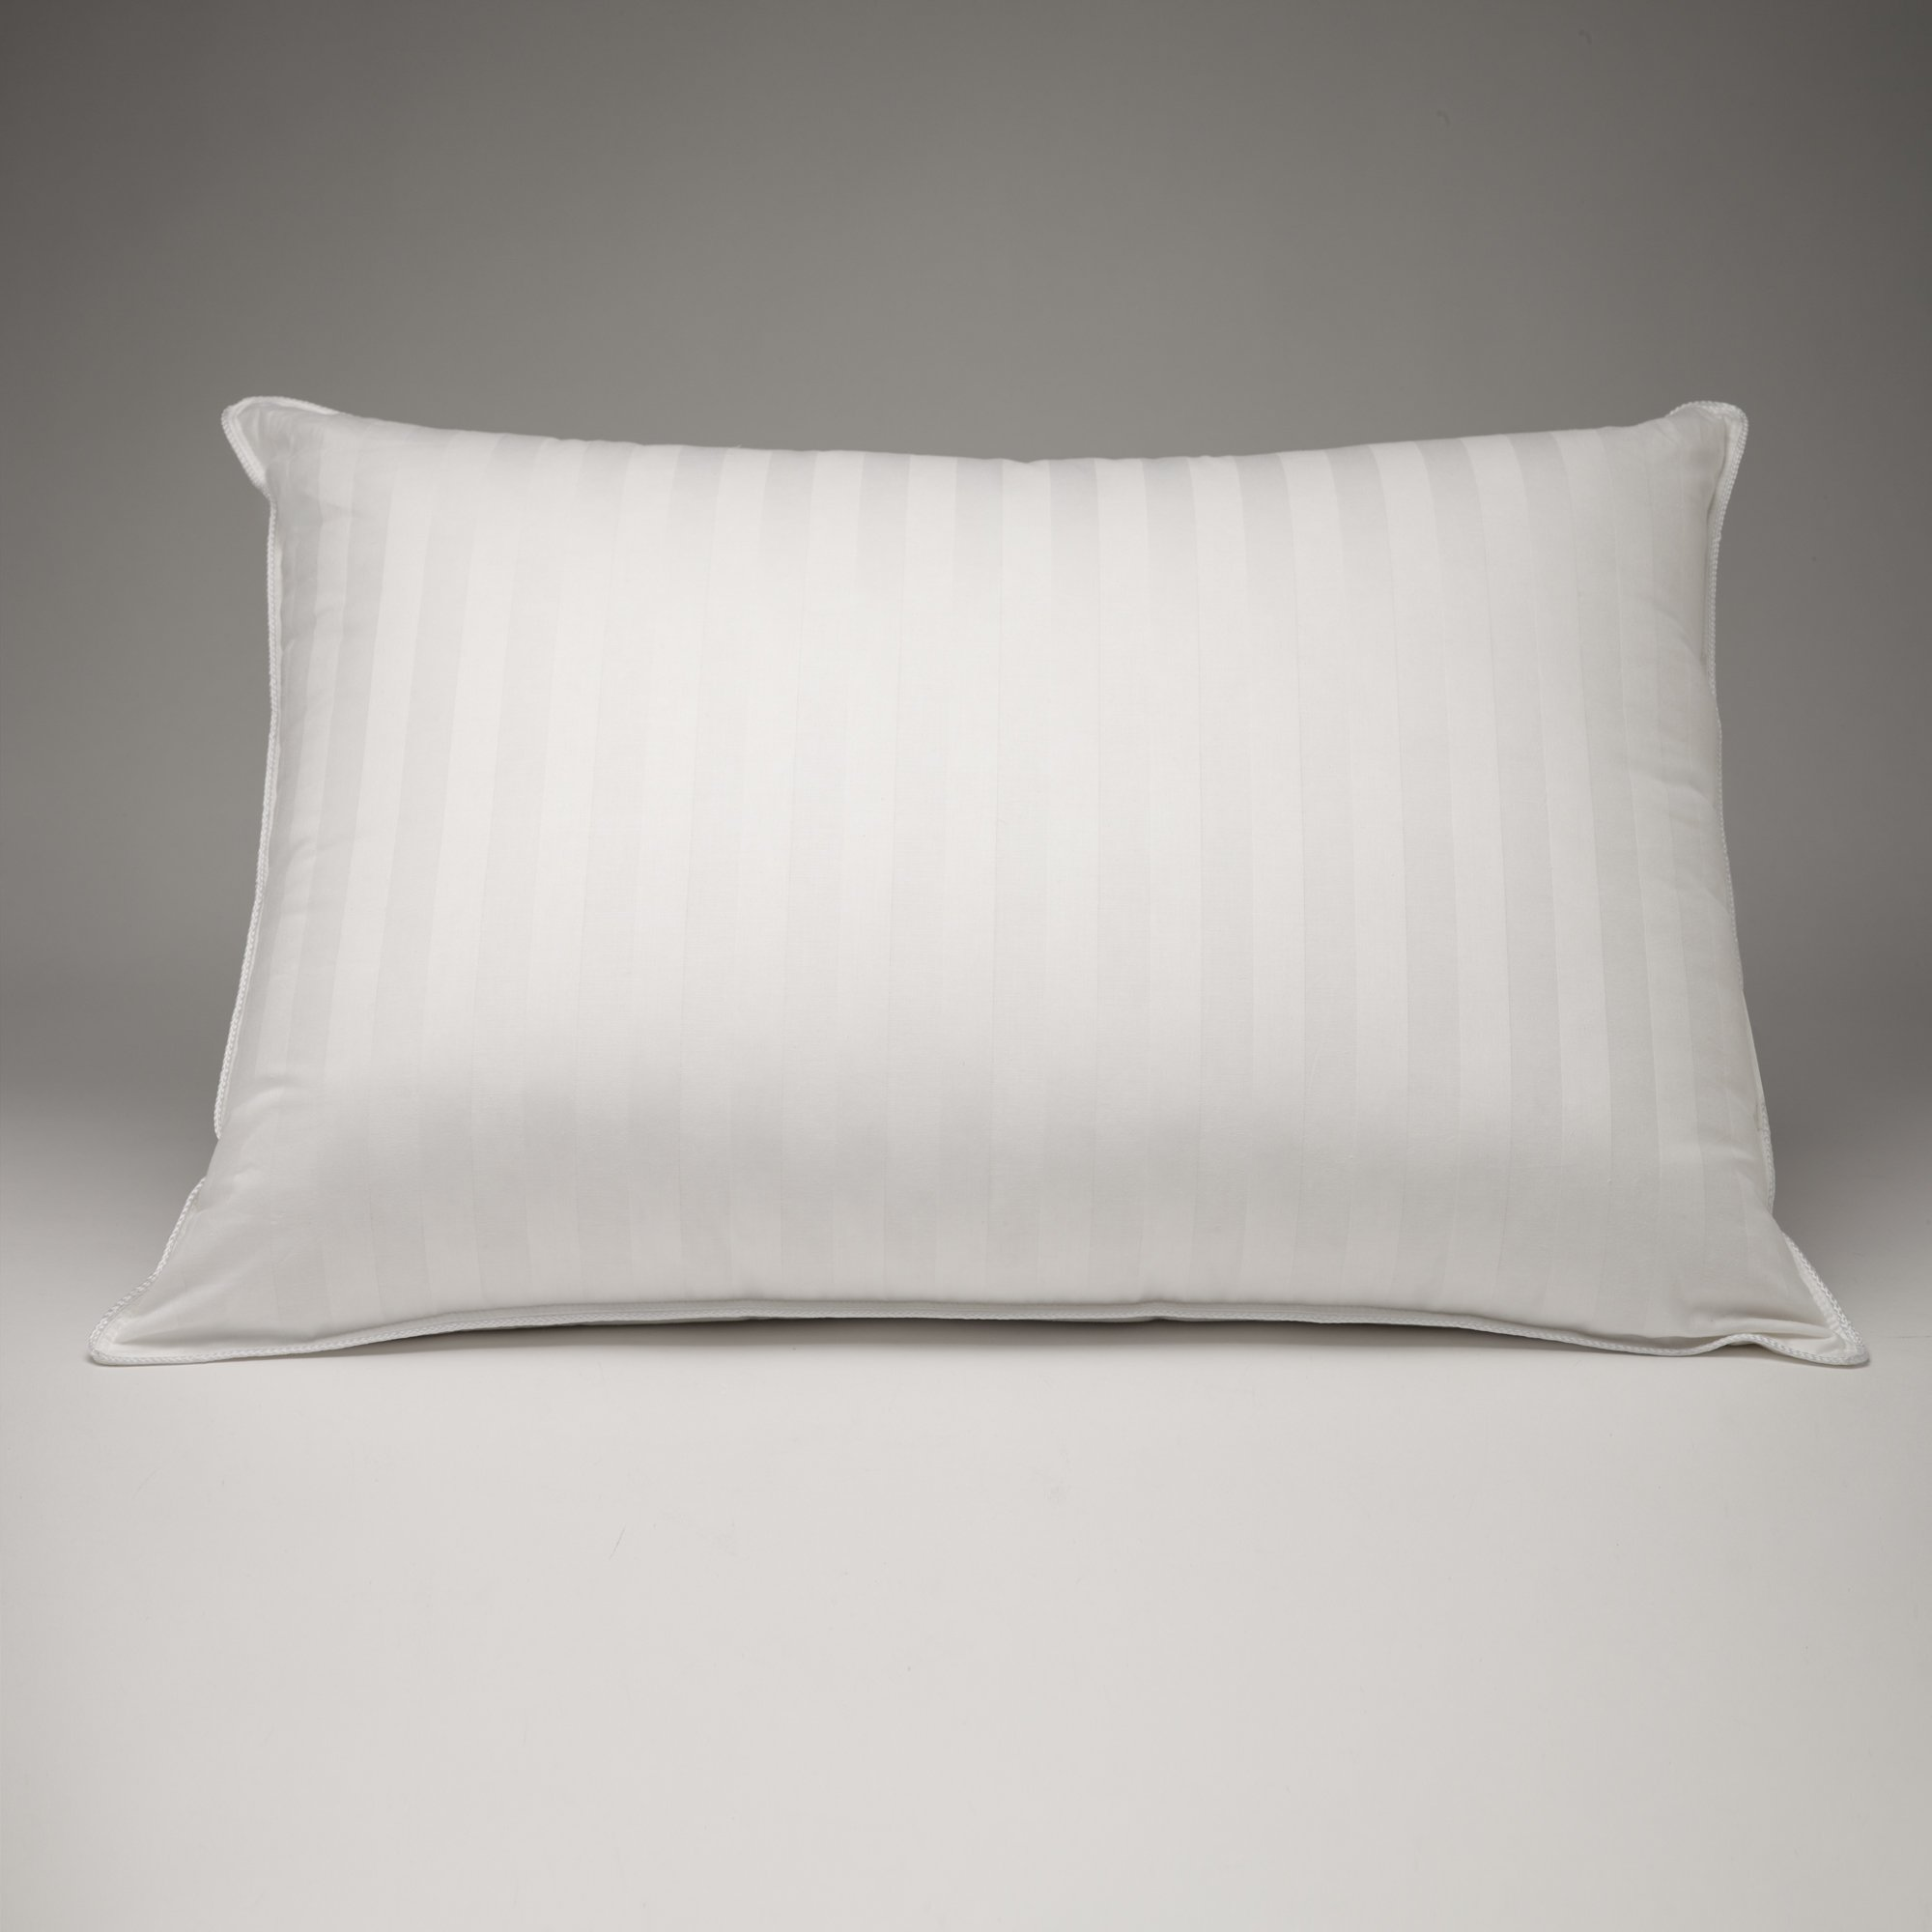 FineFeather 100% Hungarian White Goose Down Pillow, Luxury 700 Fill Power, Standard Size